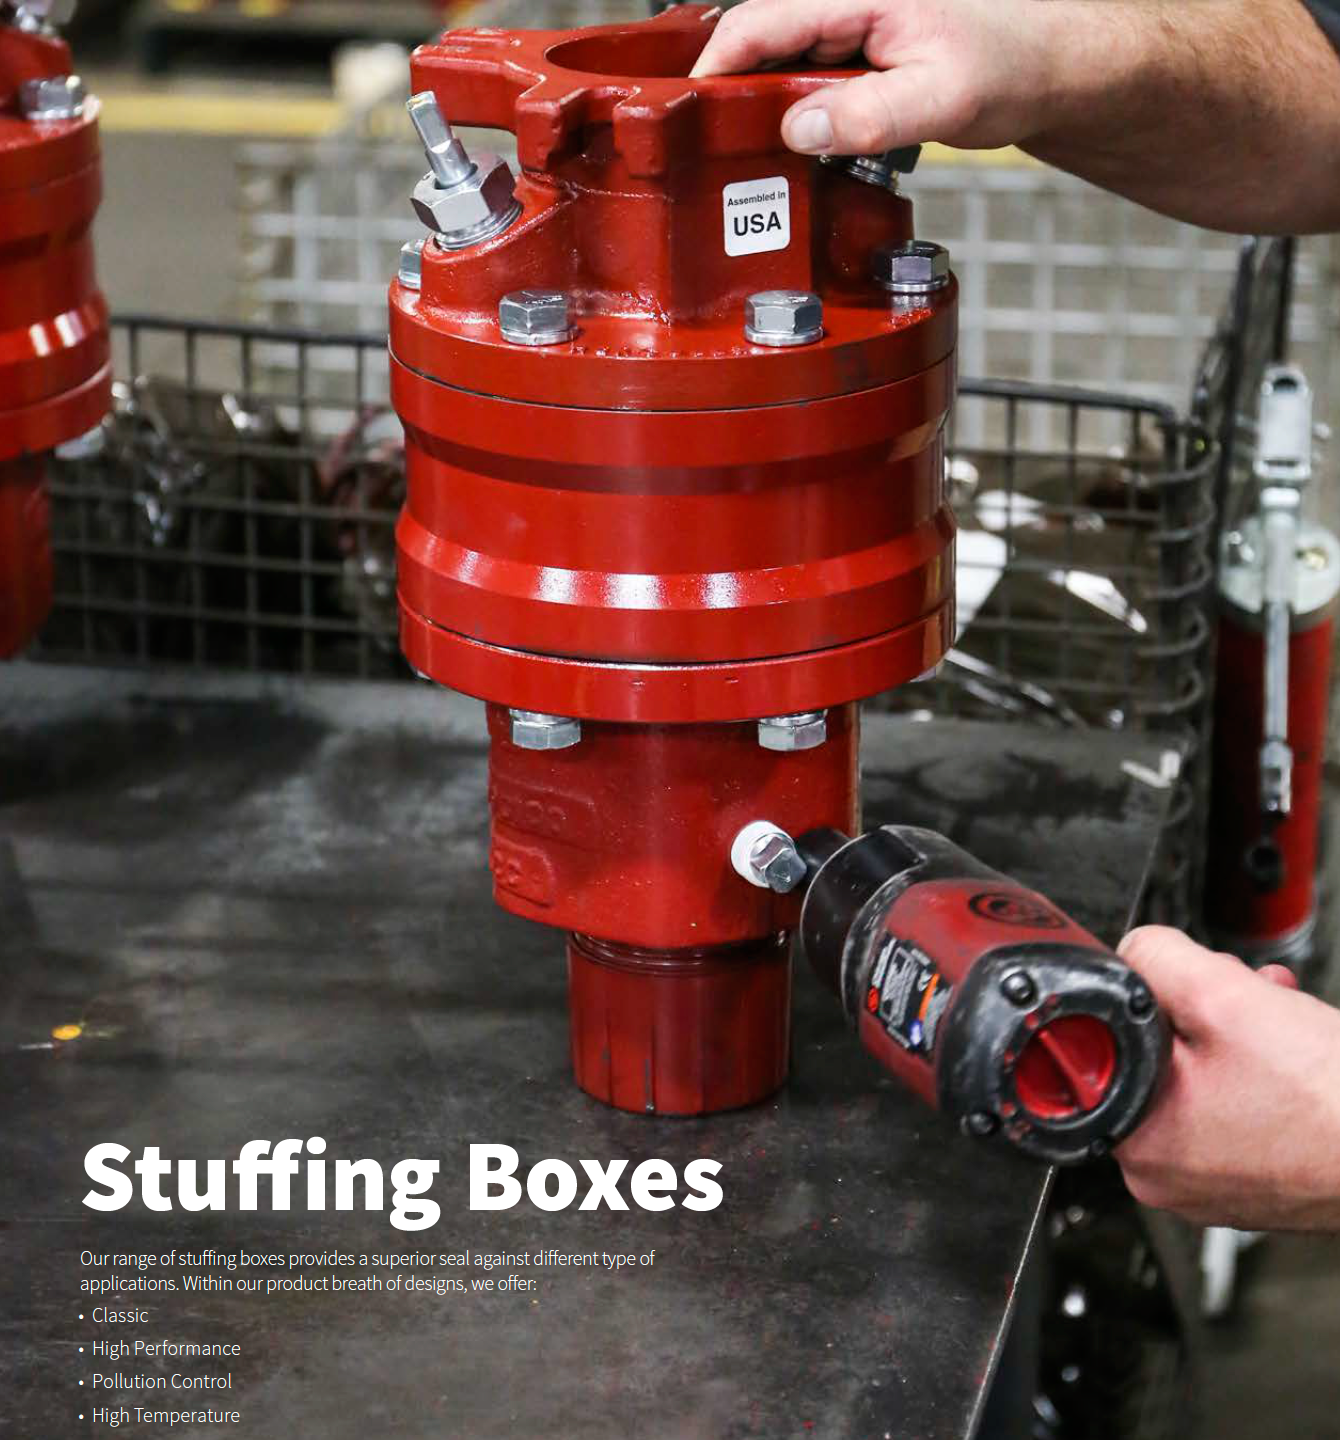 stuffing_boxes